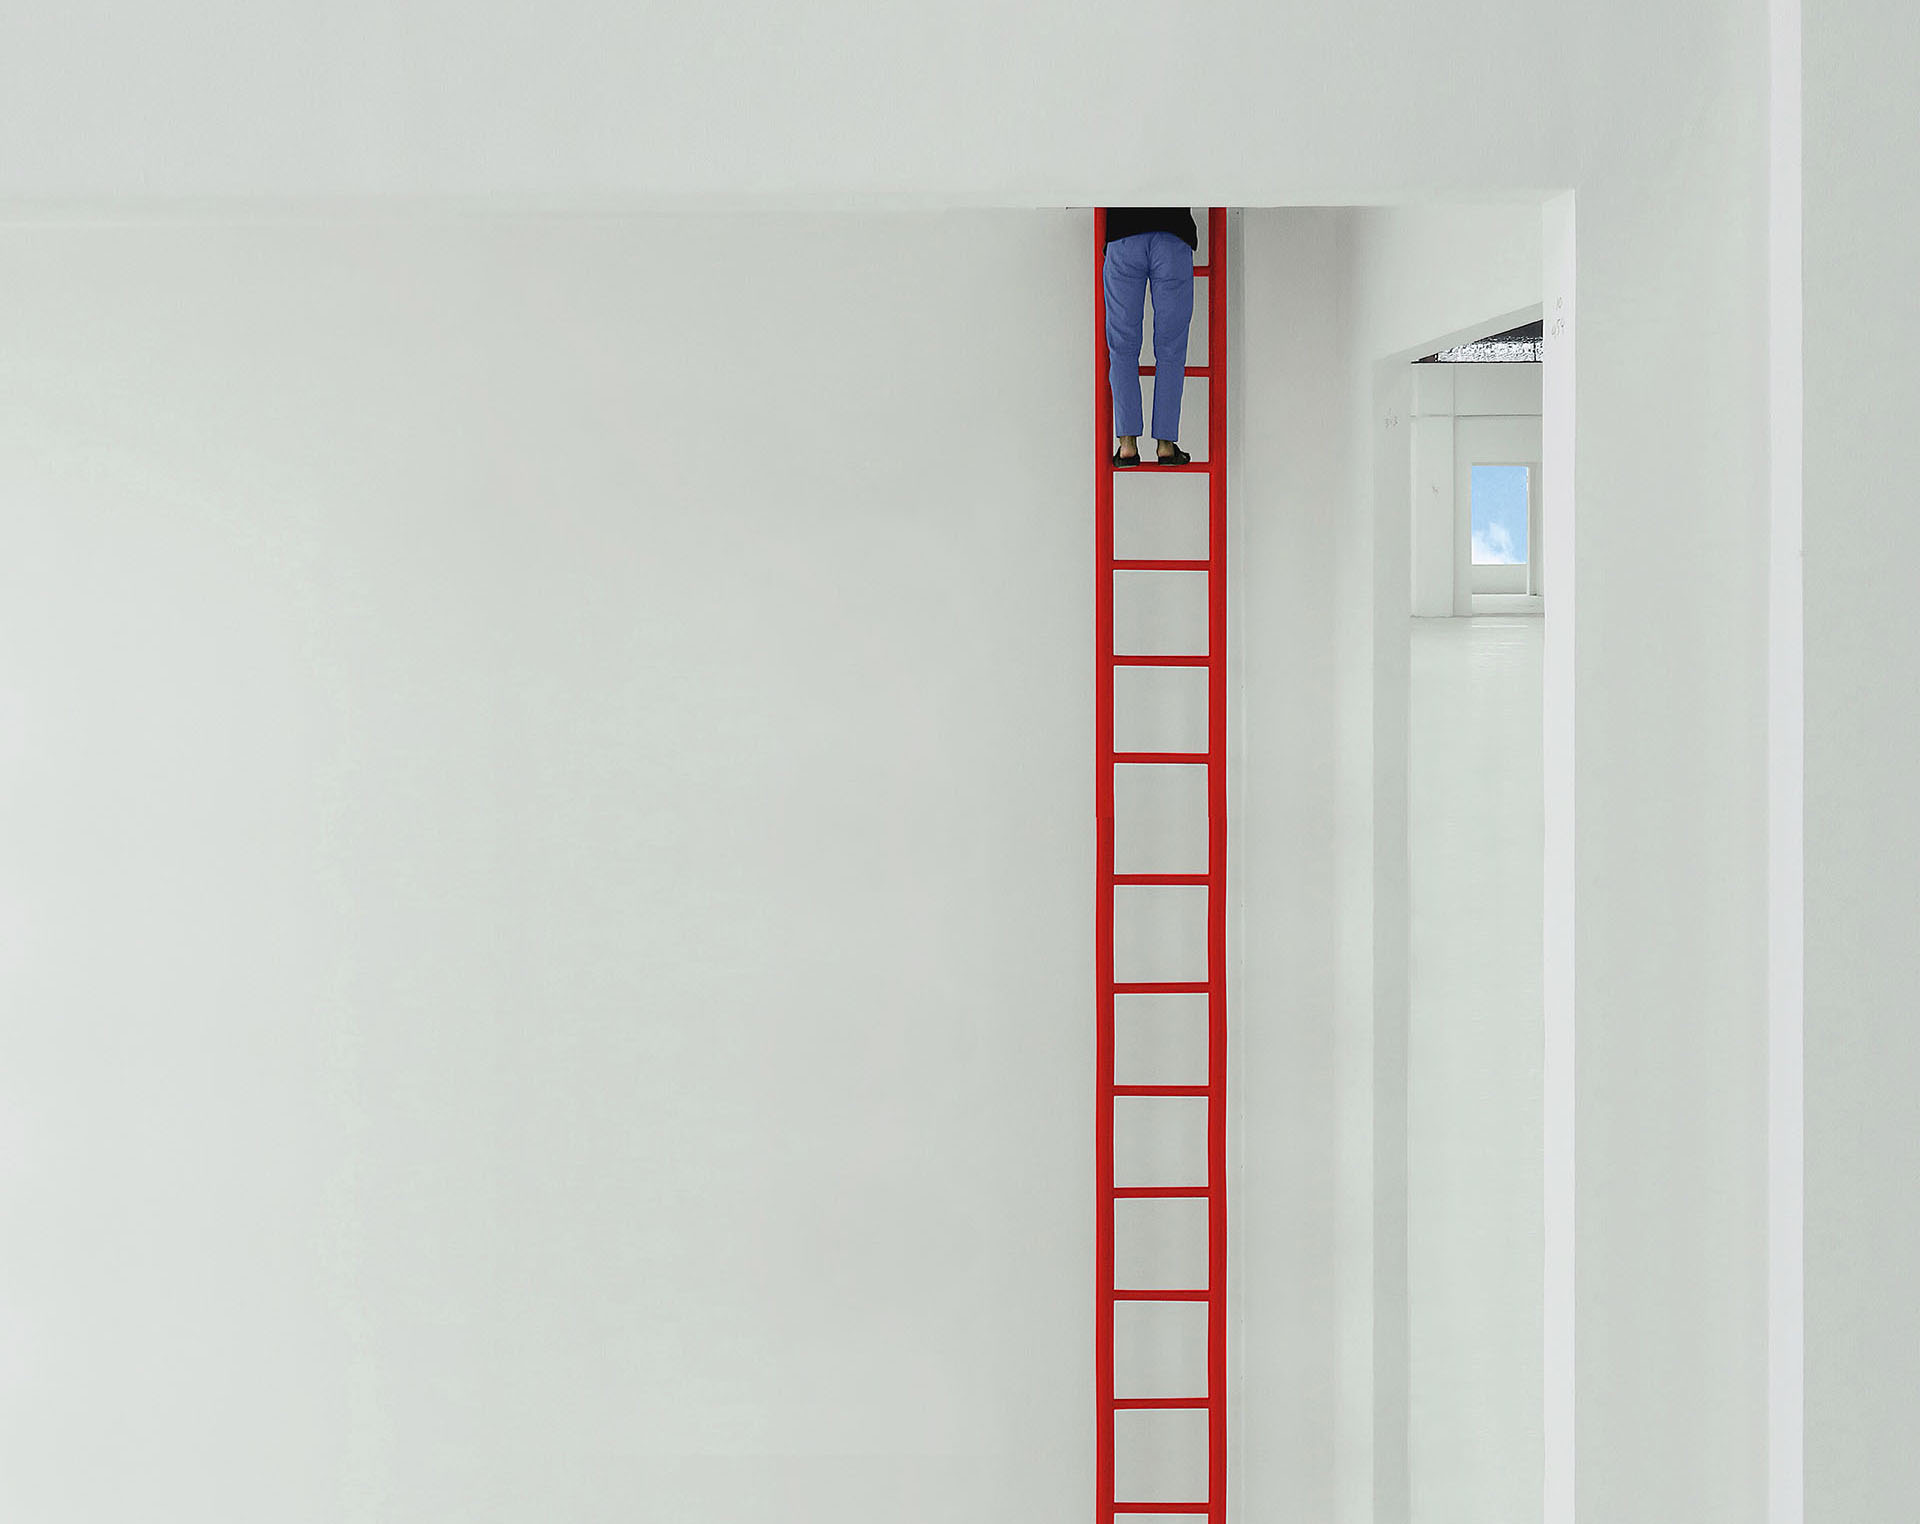 A white room and a red ladder - a quirky capture by Ramadhian | Andhika Ramadhian | STIRworld